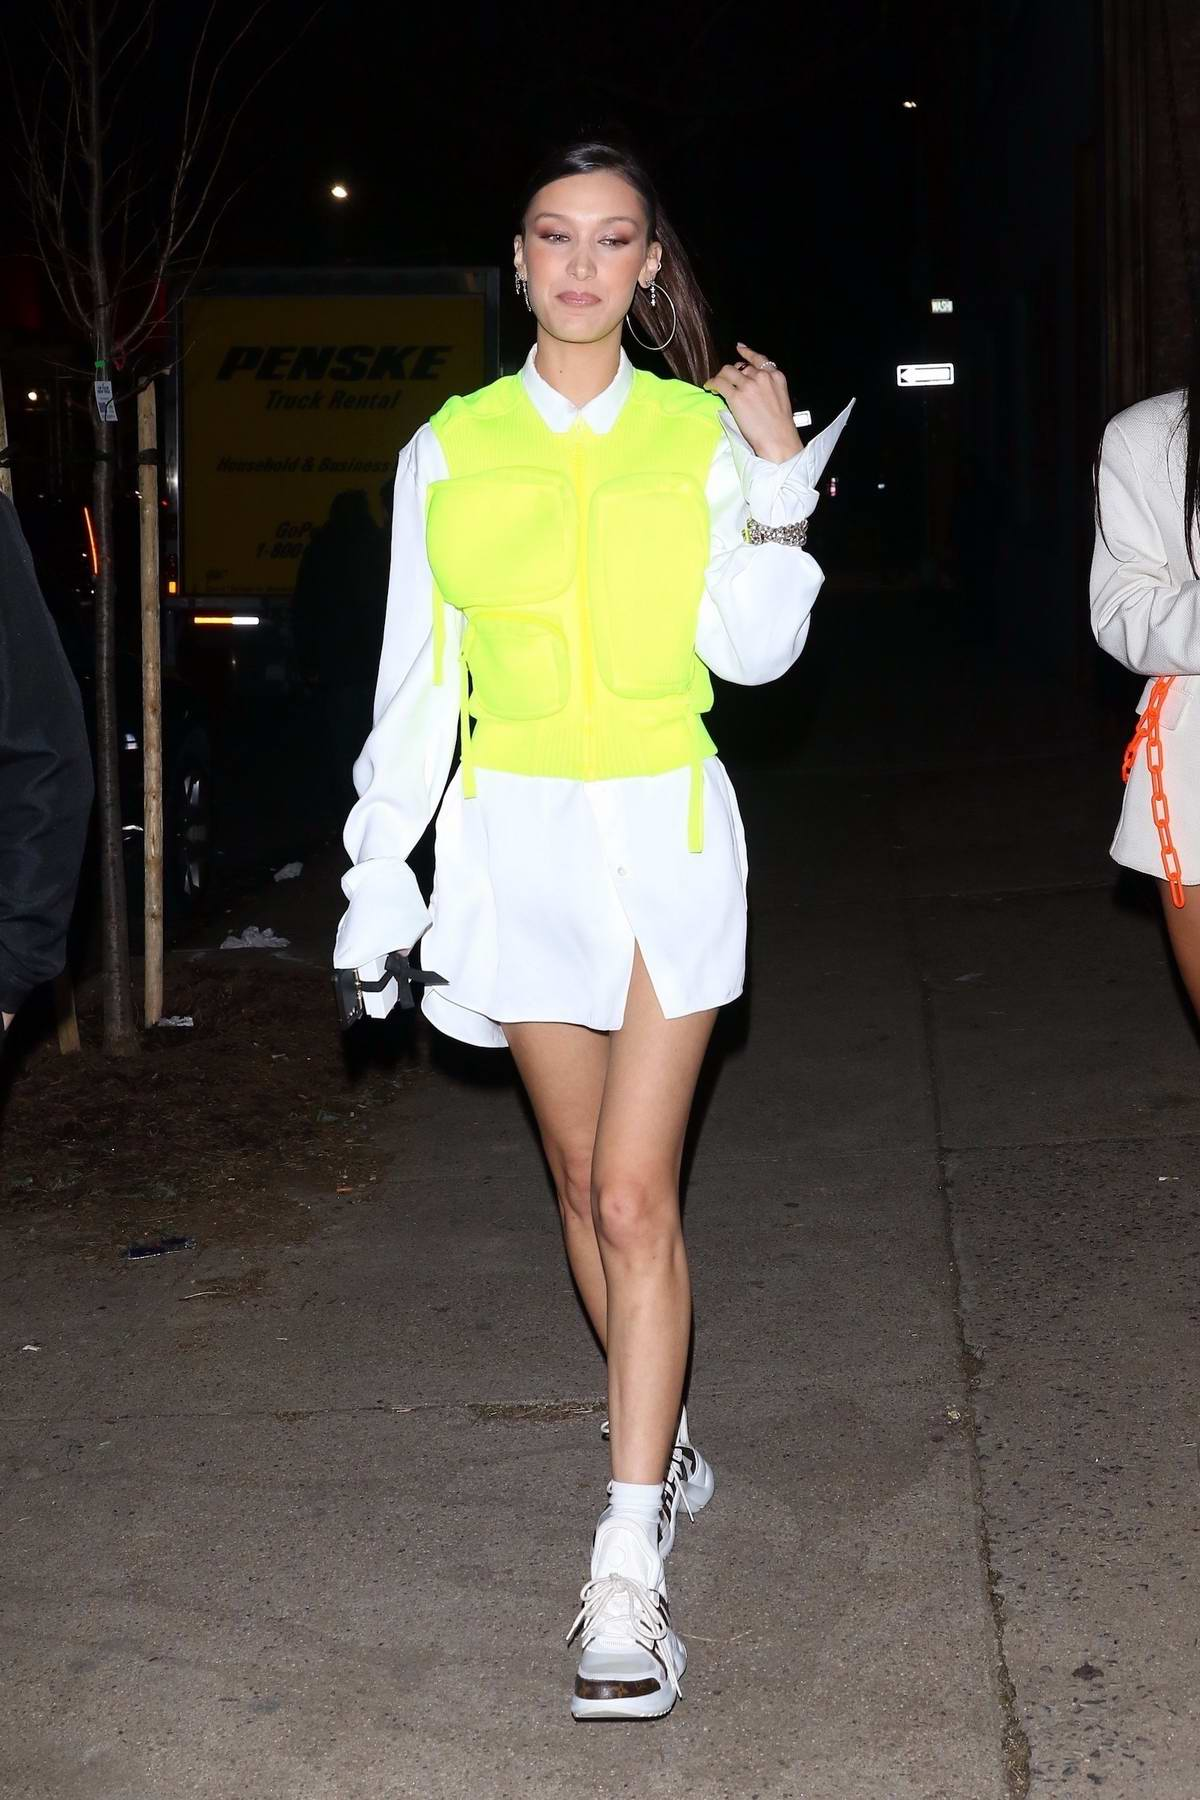 Bella Hadid rocks neon vest over a short white dress as she attends Chrome Hearts & Louis Vuitton Dinner in New York City